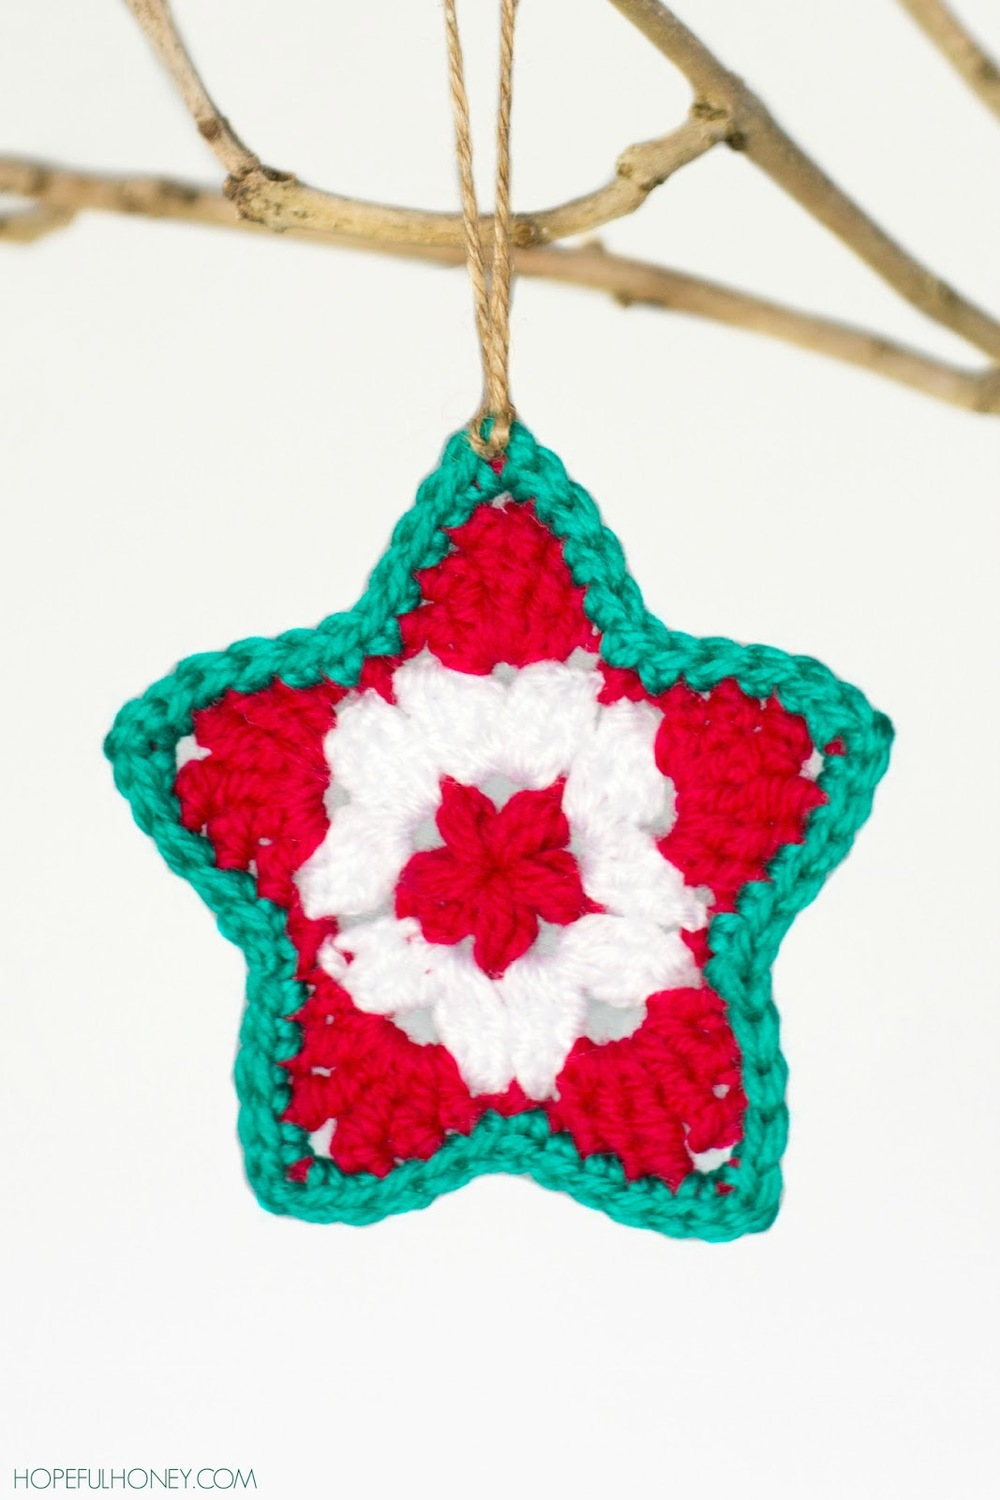 Star Christmas Ornament Crochet Pattern FaveCrafts.com